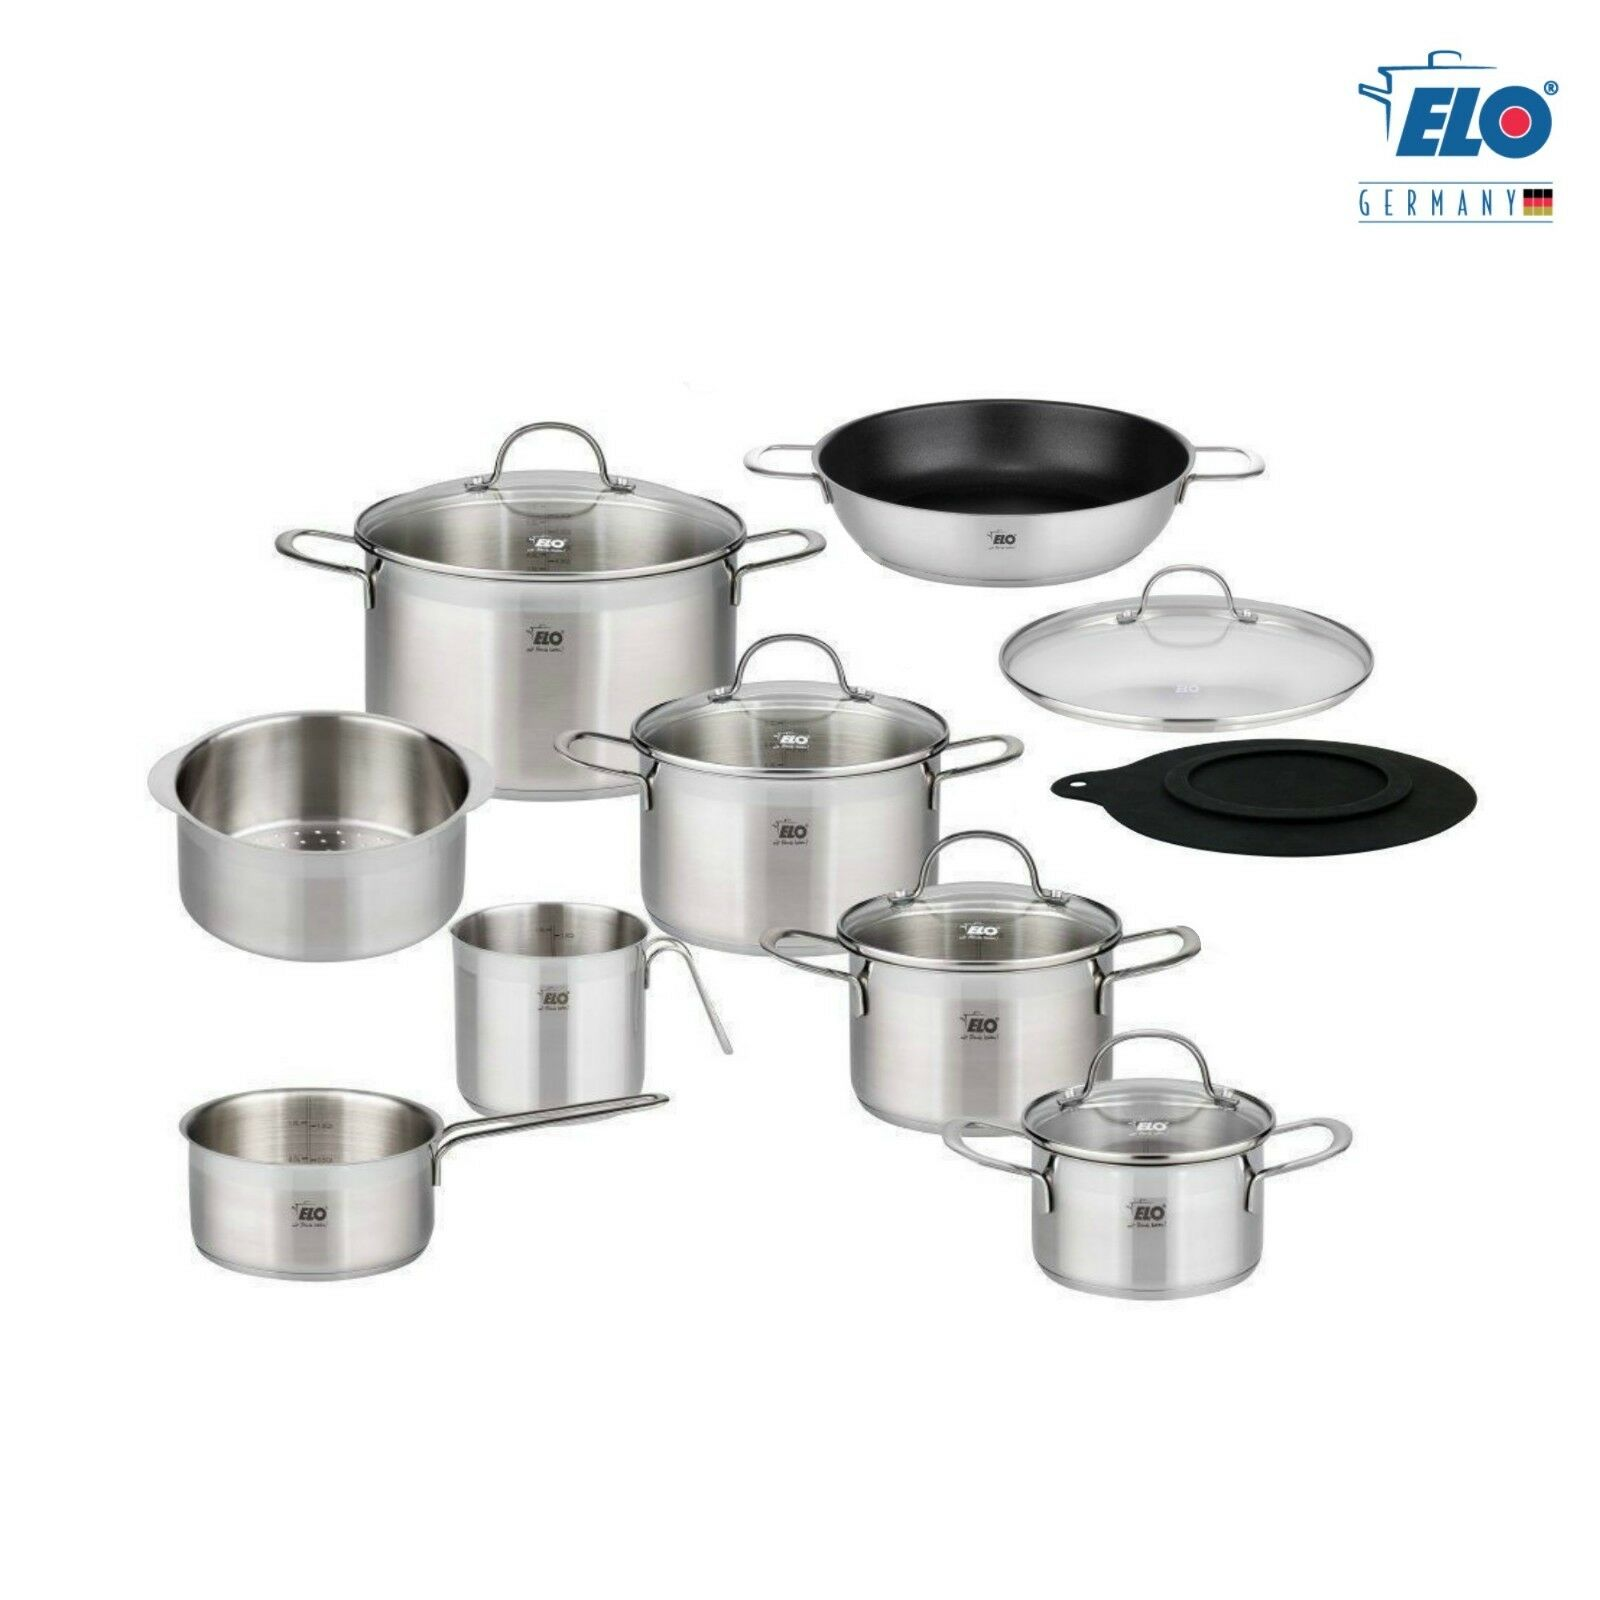 ELO Germany 14 PC 18 10 Stainless Steel Kitchen Induction Cookware Pot & Pan Set